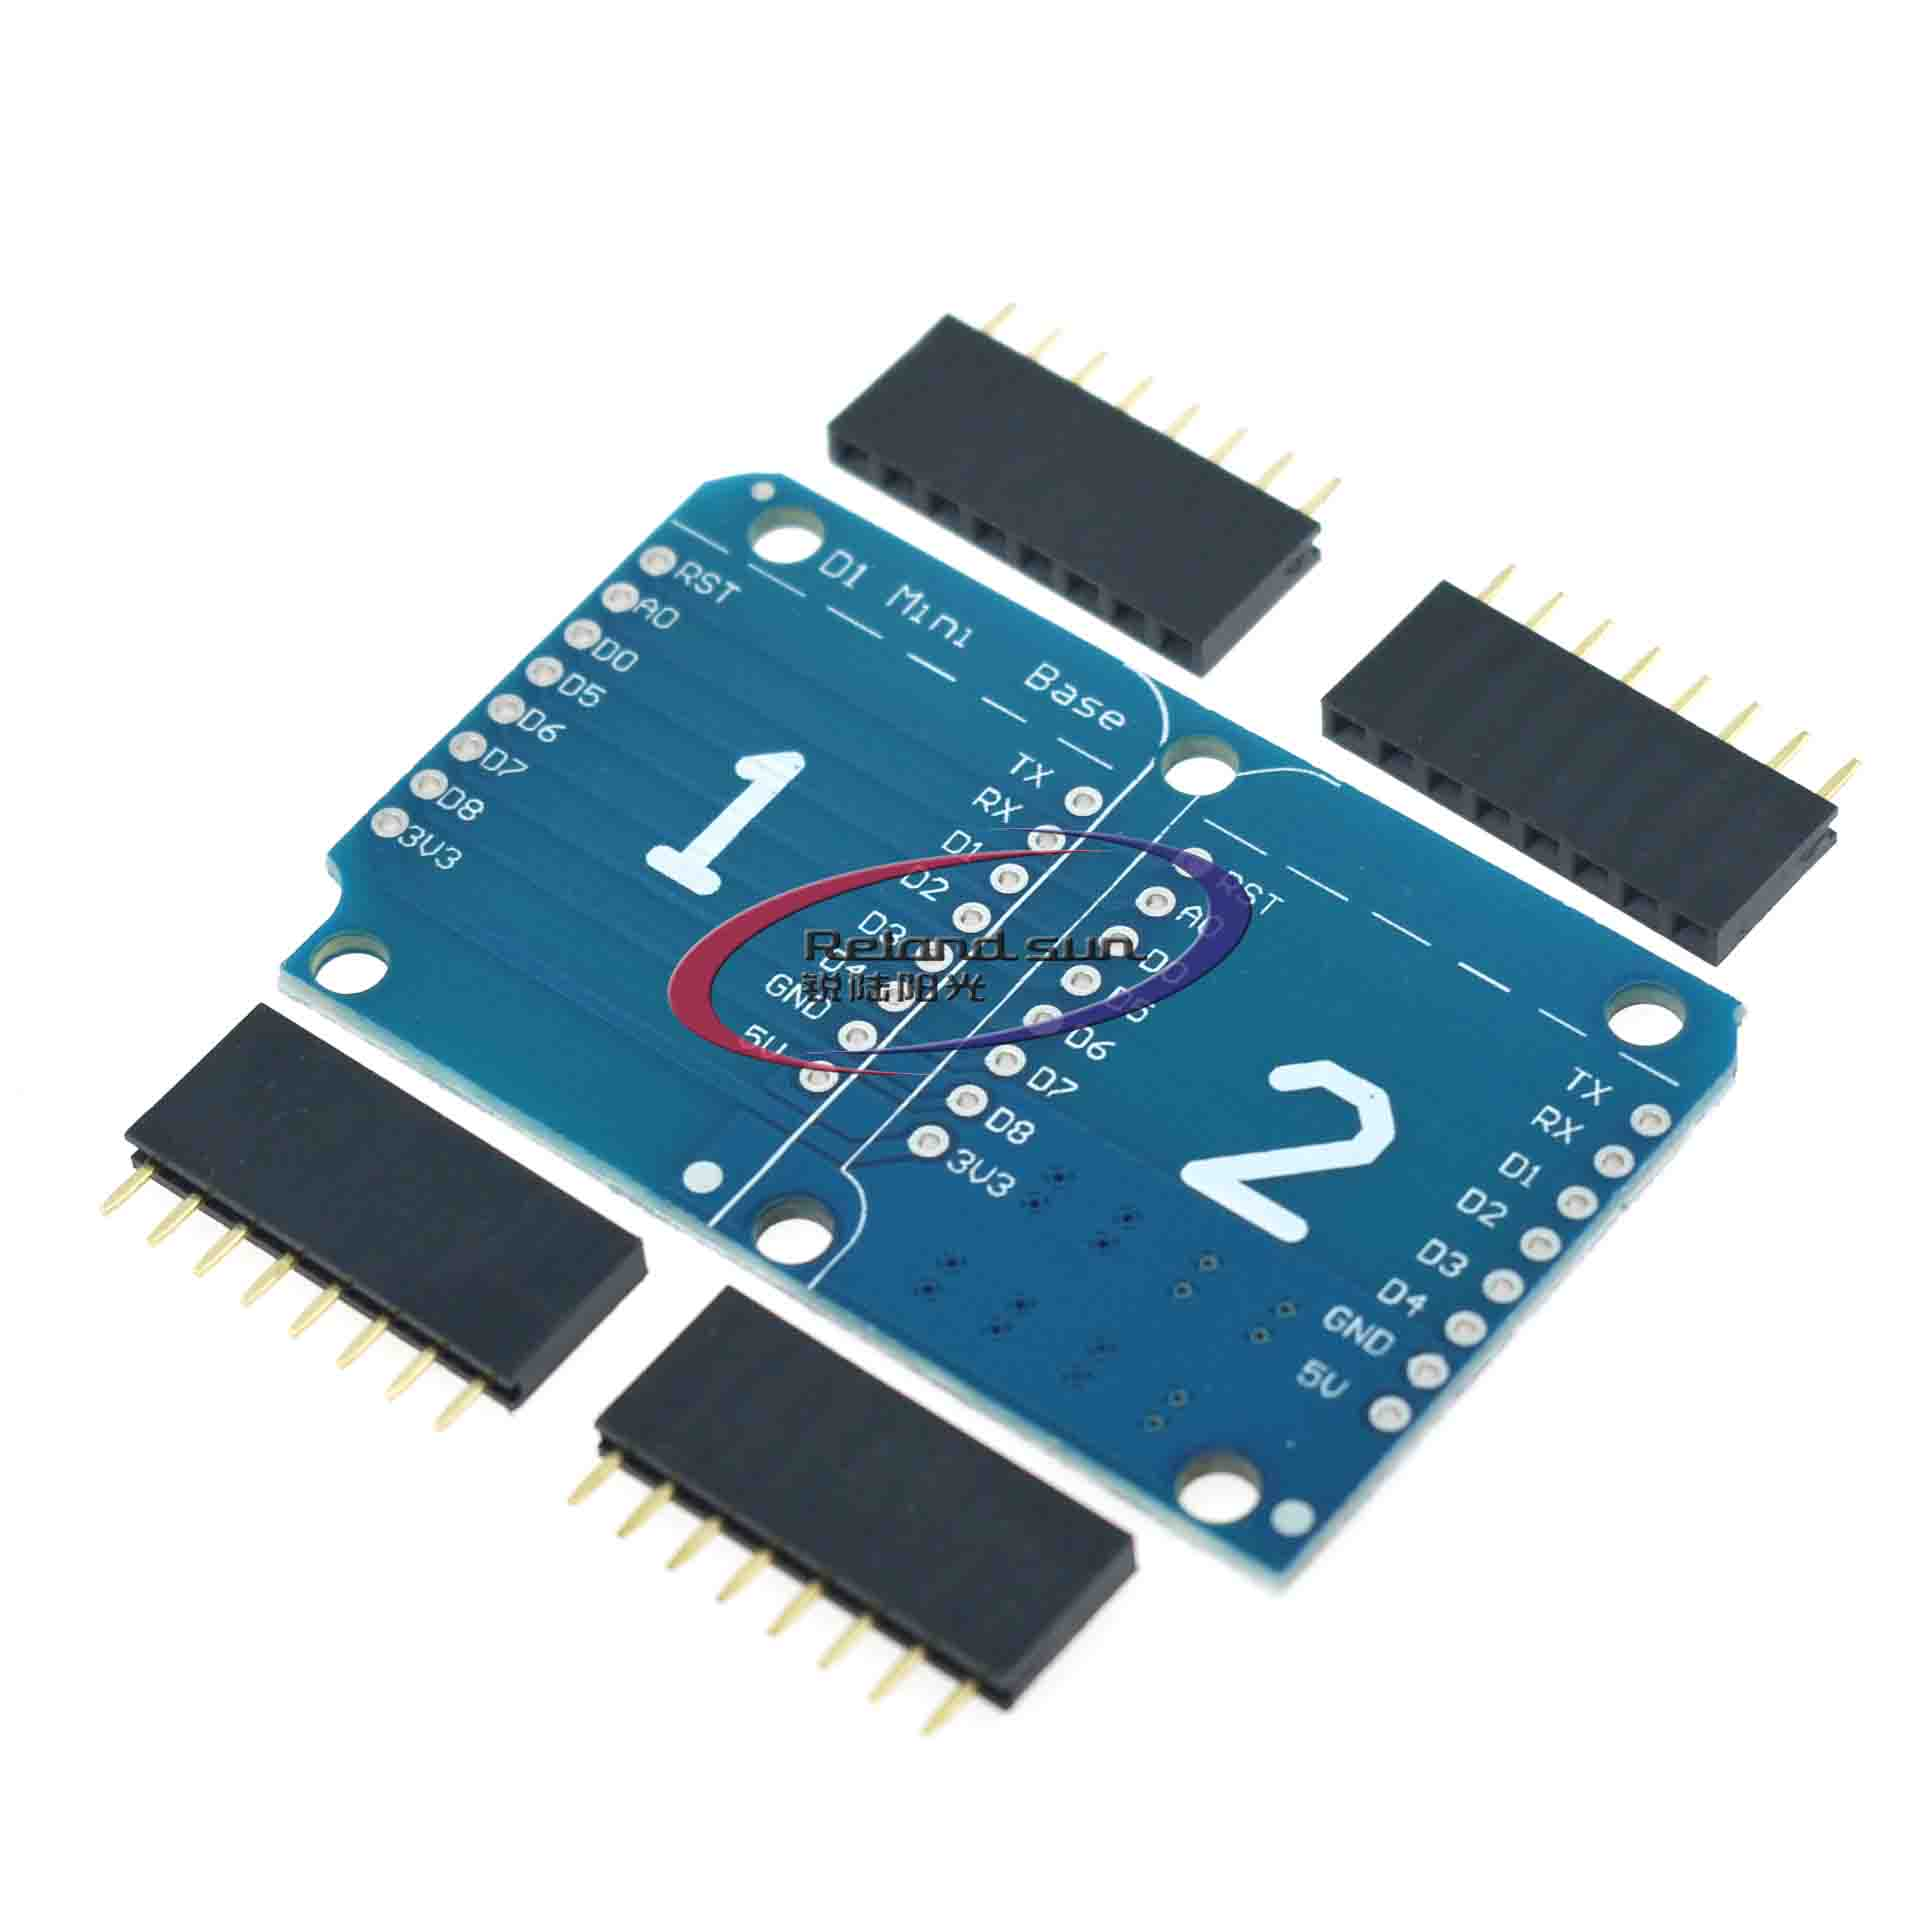 Double Socket Dual Base Shield for WeMos D1 Mini NodeMCU <font><b>ESP8266</b></font> For Arduino <font><b>Expansion</b></font> <font><b>Board</b></font> image